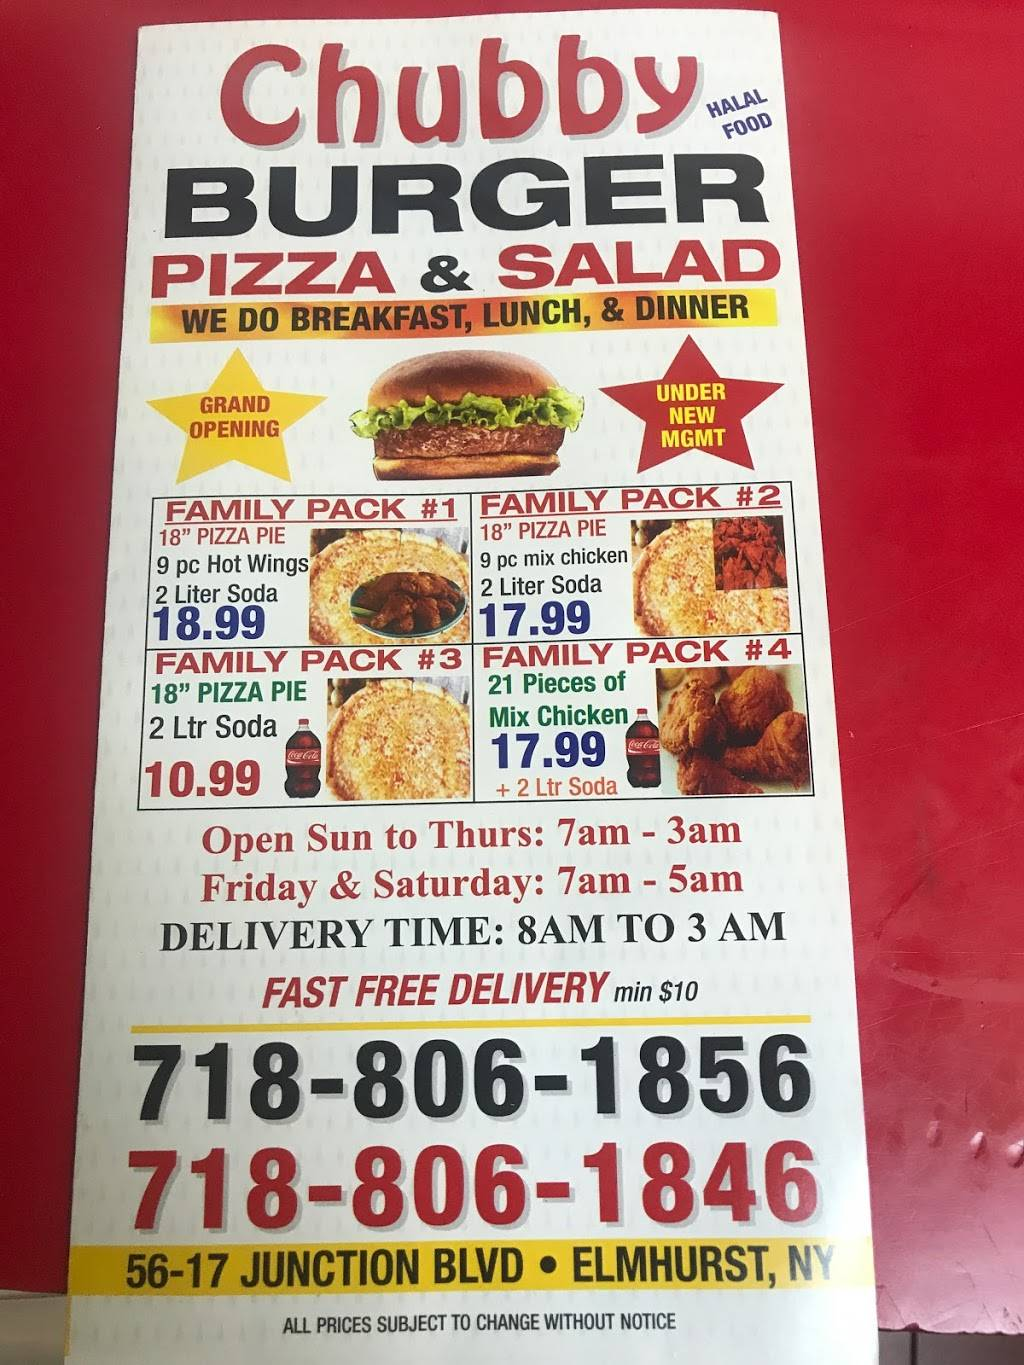 Chubby burgers,pizza&salad   meal takeaway   5617 Junction Blvd, Elmhurst, NY 11373, USA   7188061856 OR +1 718-806-1856